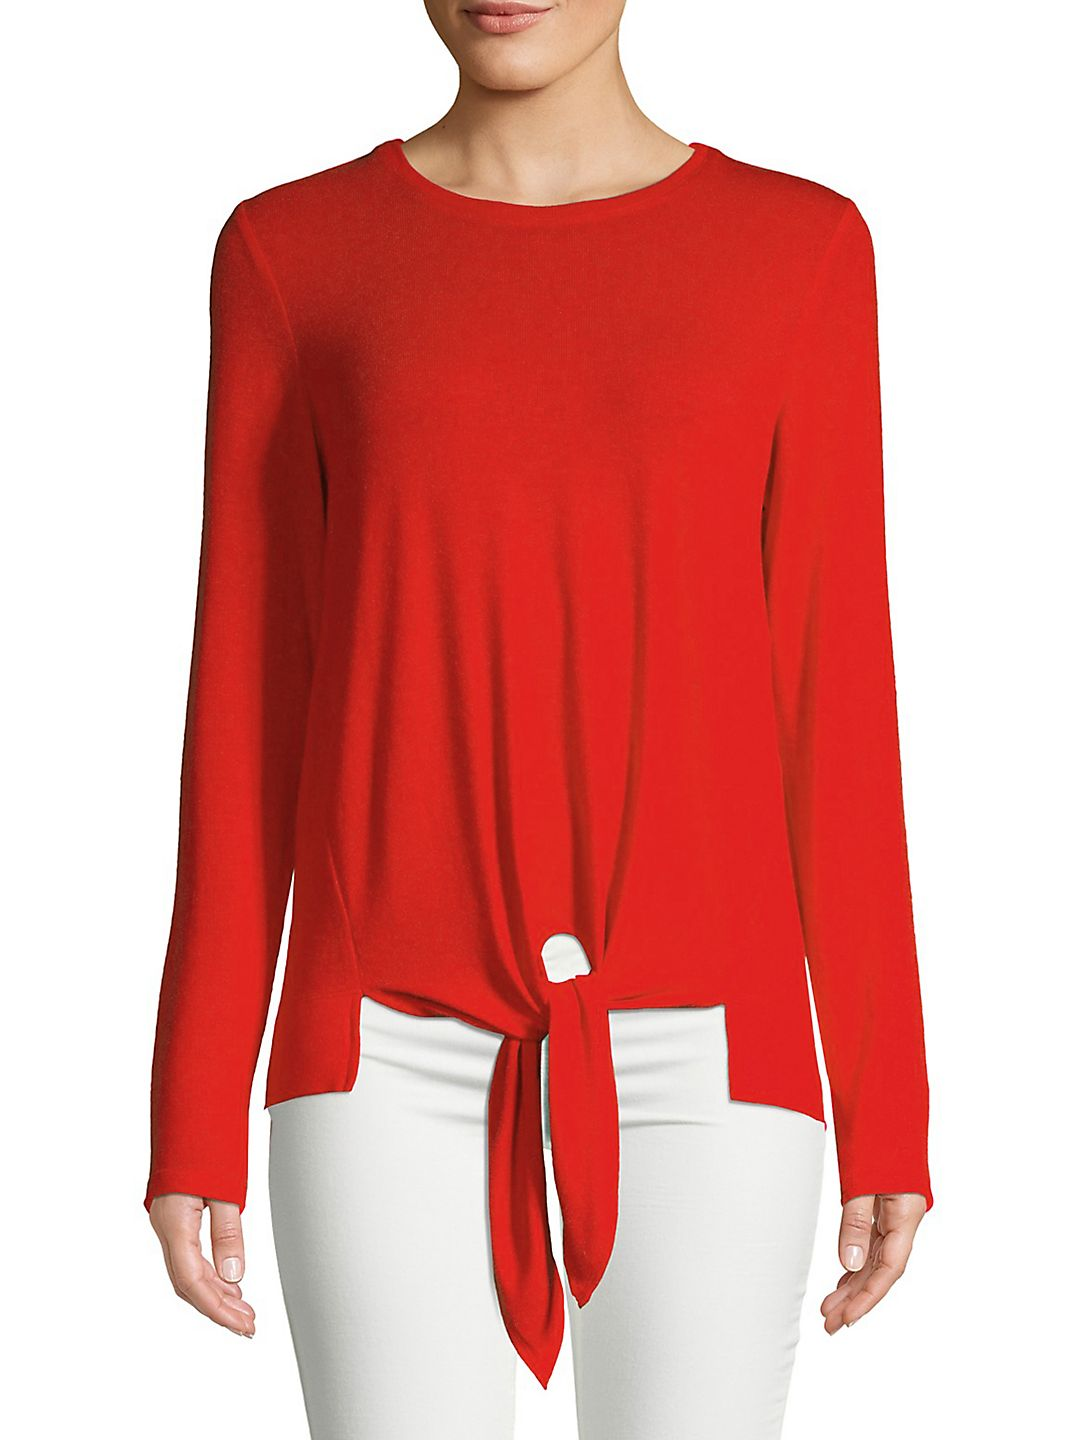 Long-Sleeve Self-Tie Top